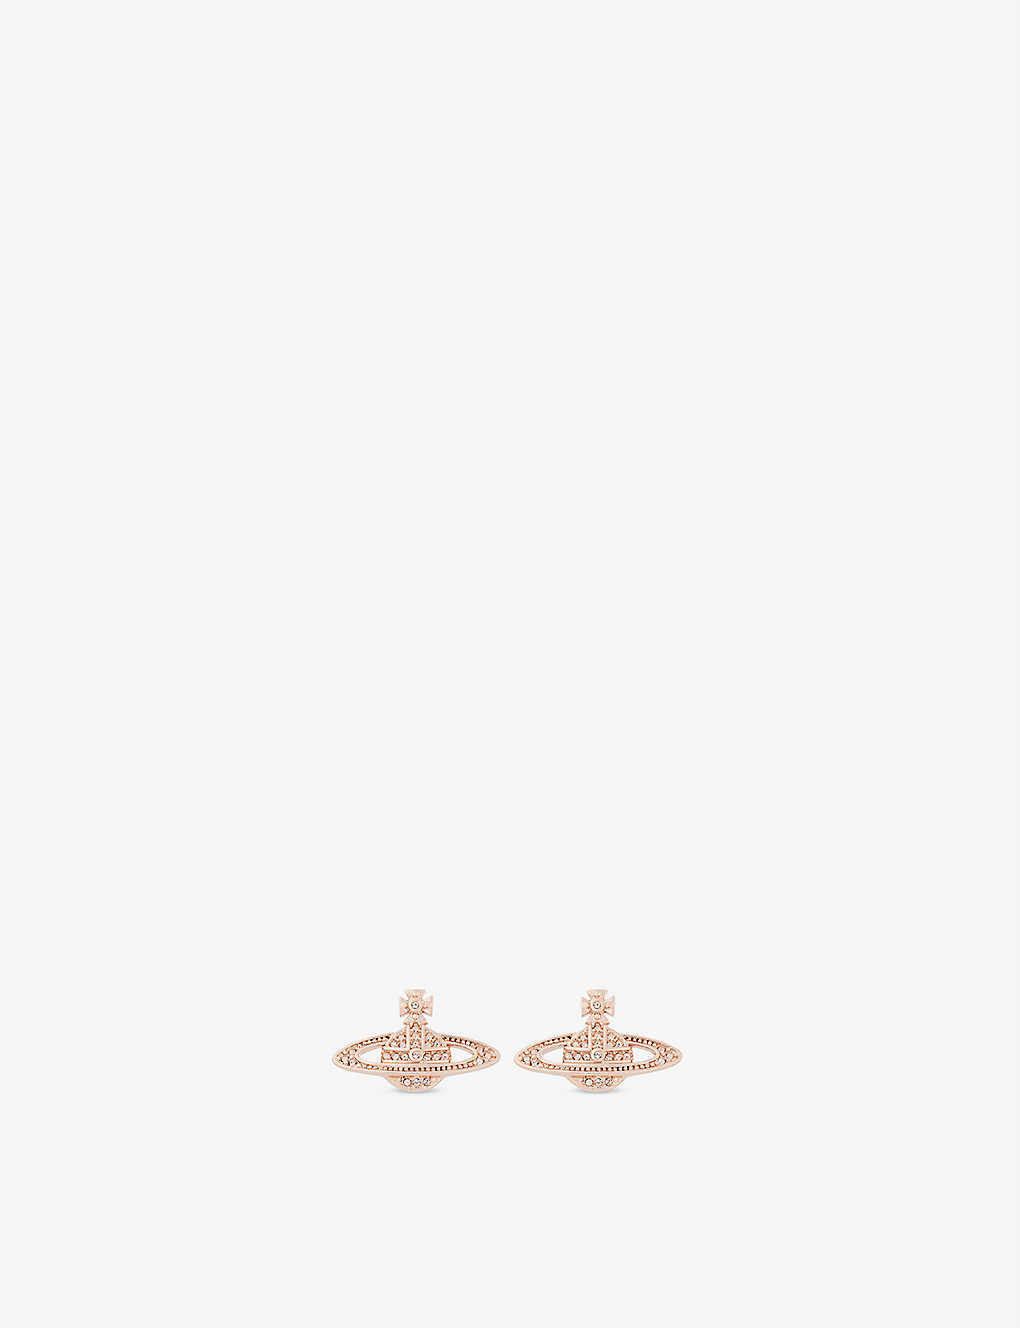 966a64aa377 VIVIENNE WESTWOOD JEWELLERY - Mini Bas Relief diamante orb earrings ...